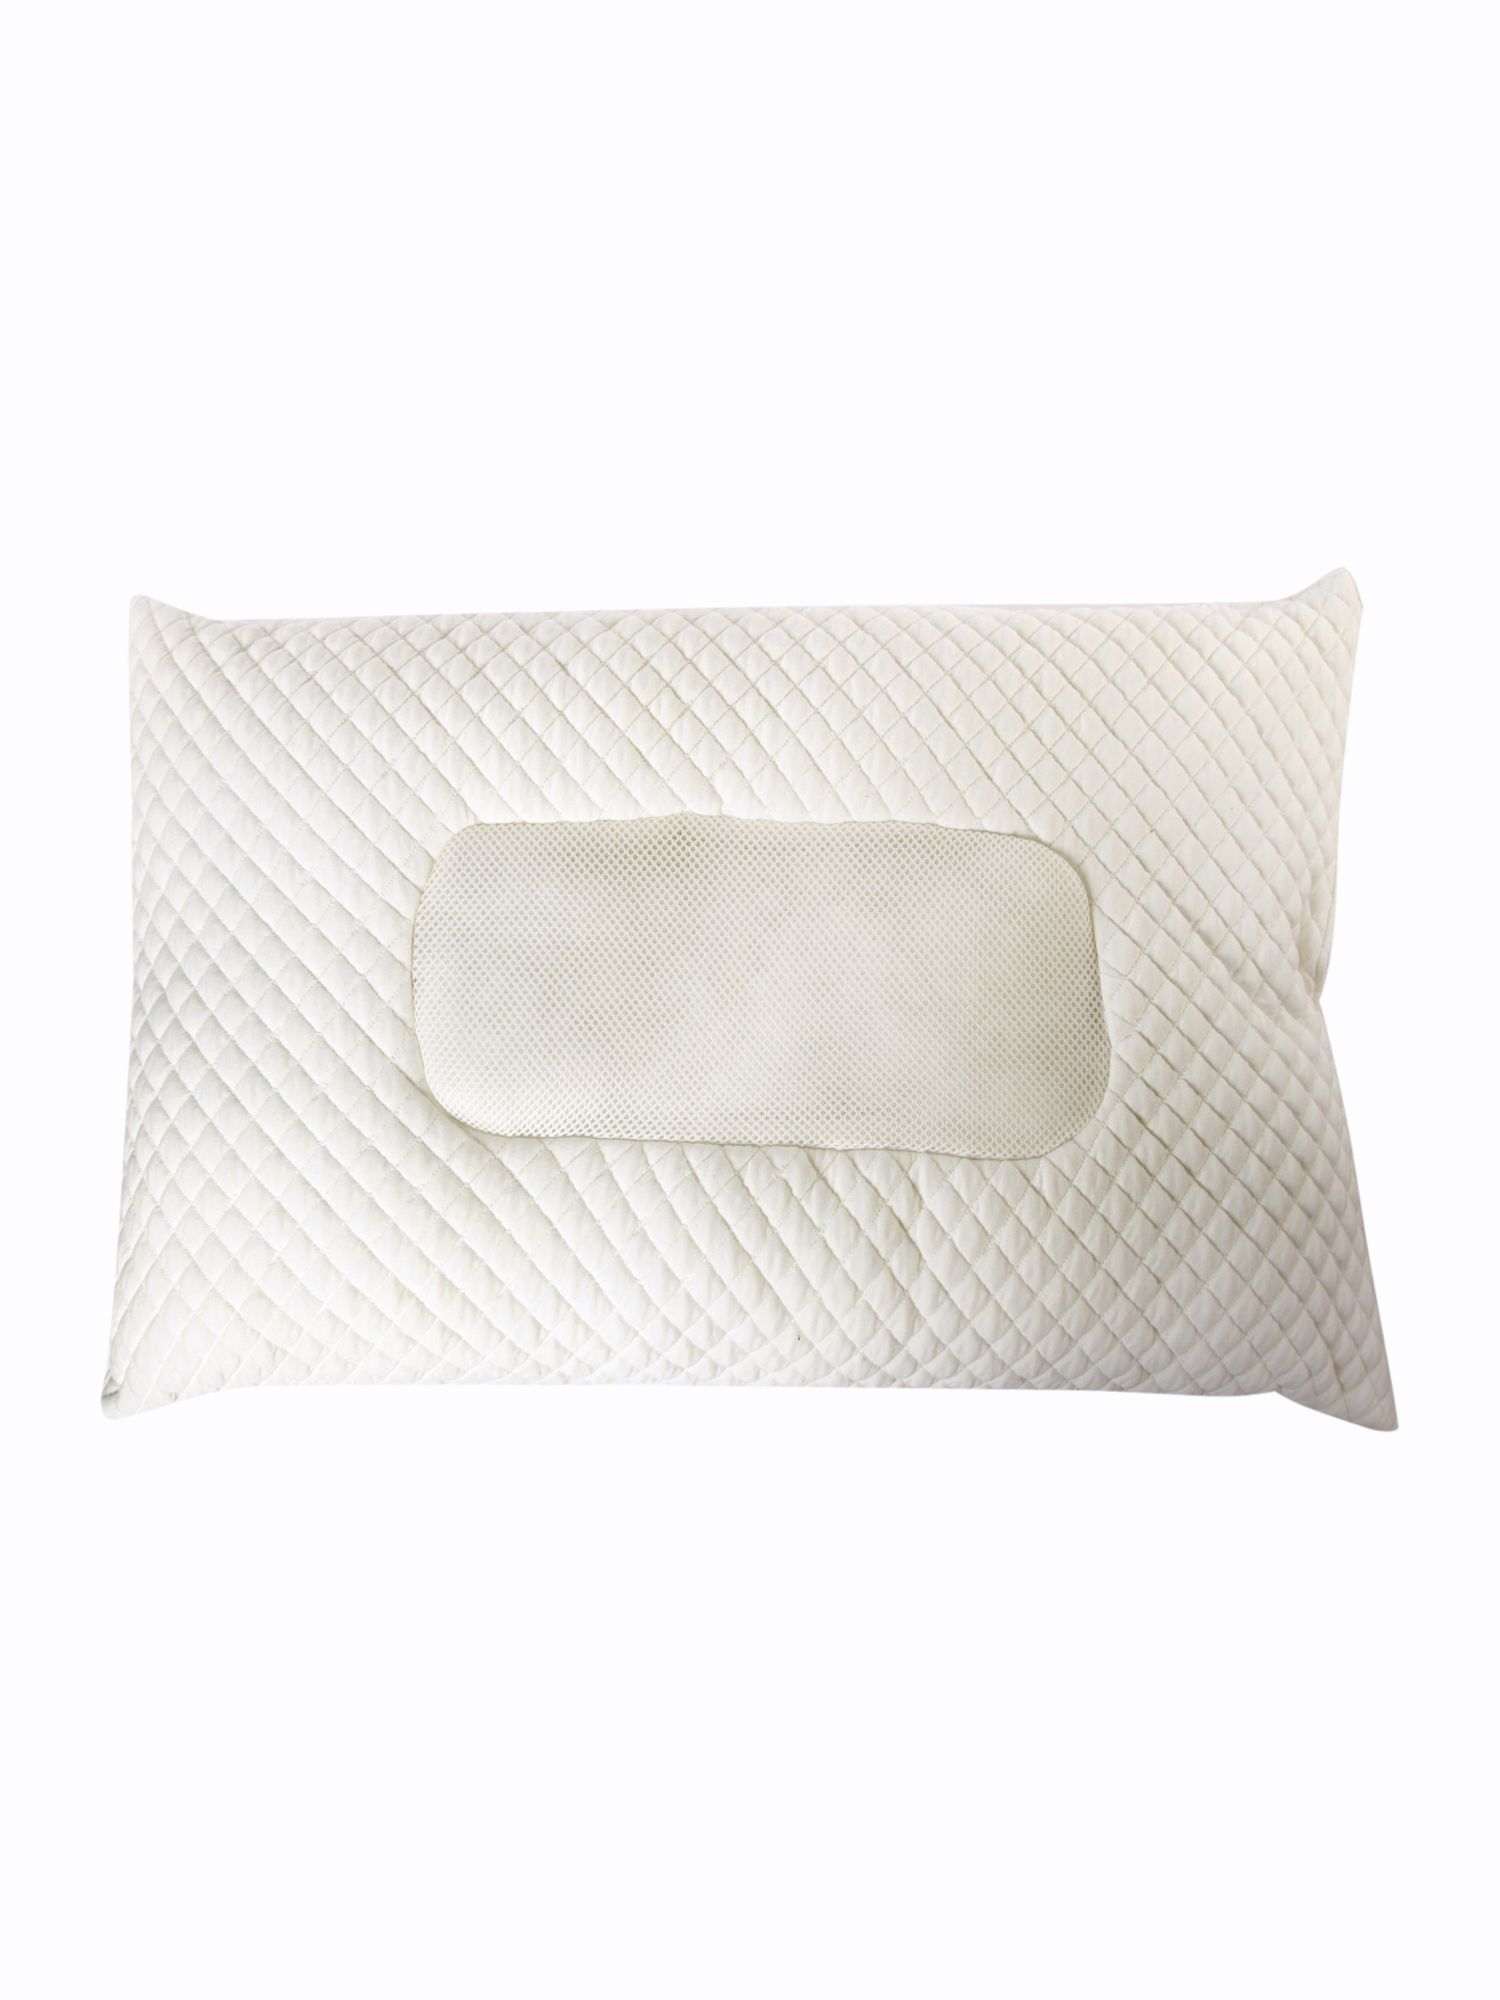 Quilted / mesh support pillow